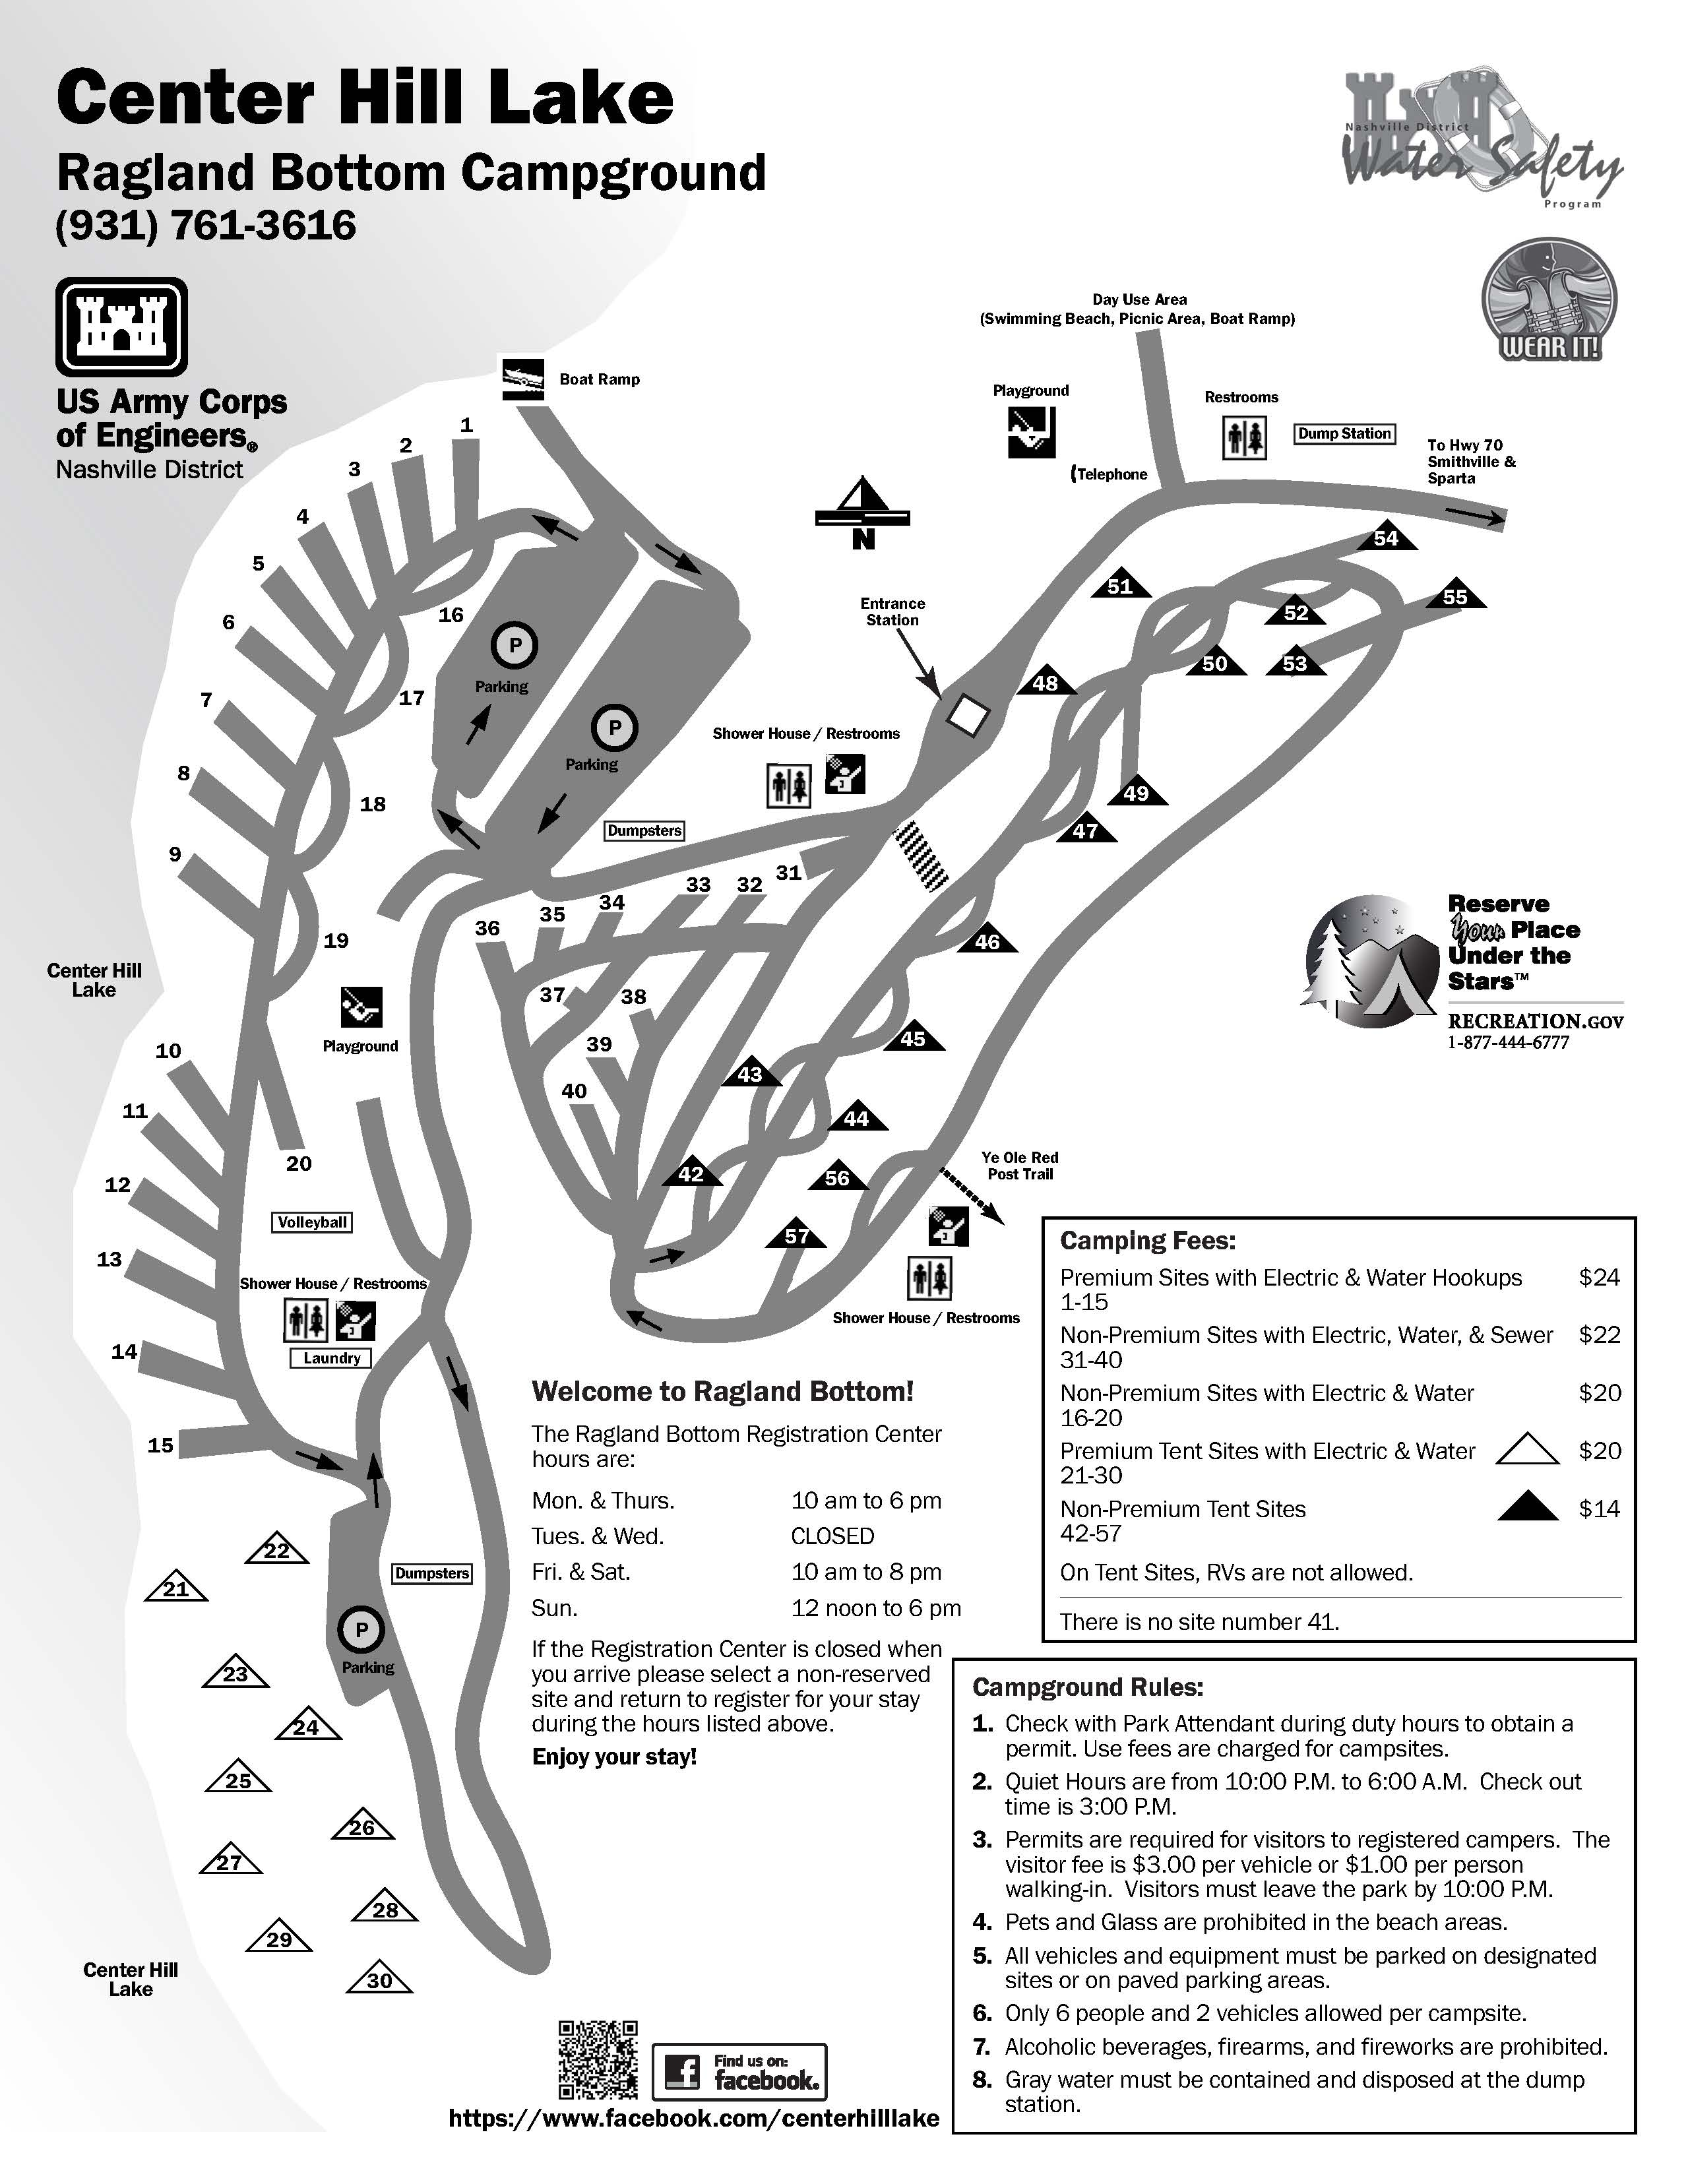 Center Hill Lake's Ragland Bottom Campground Map